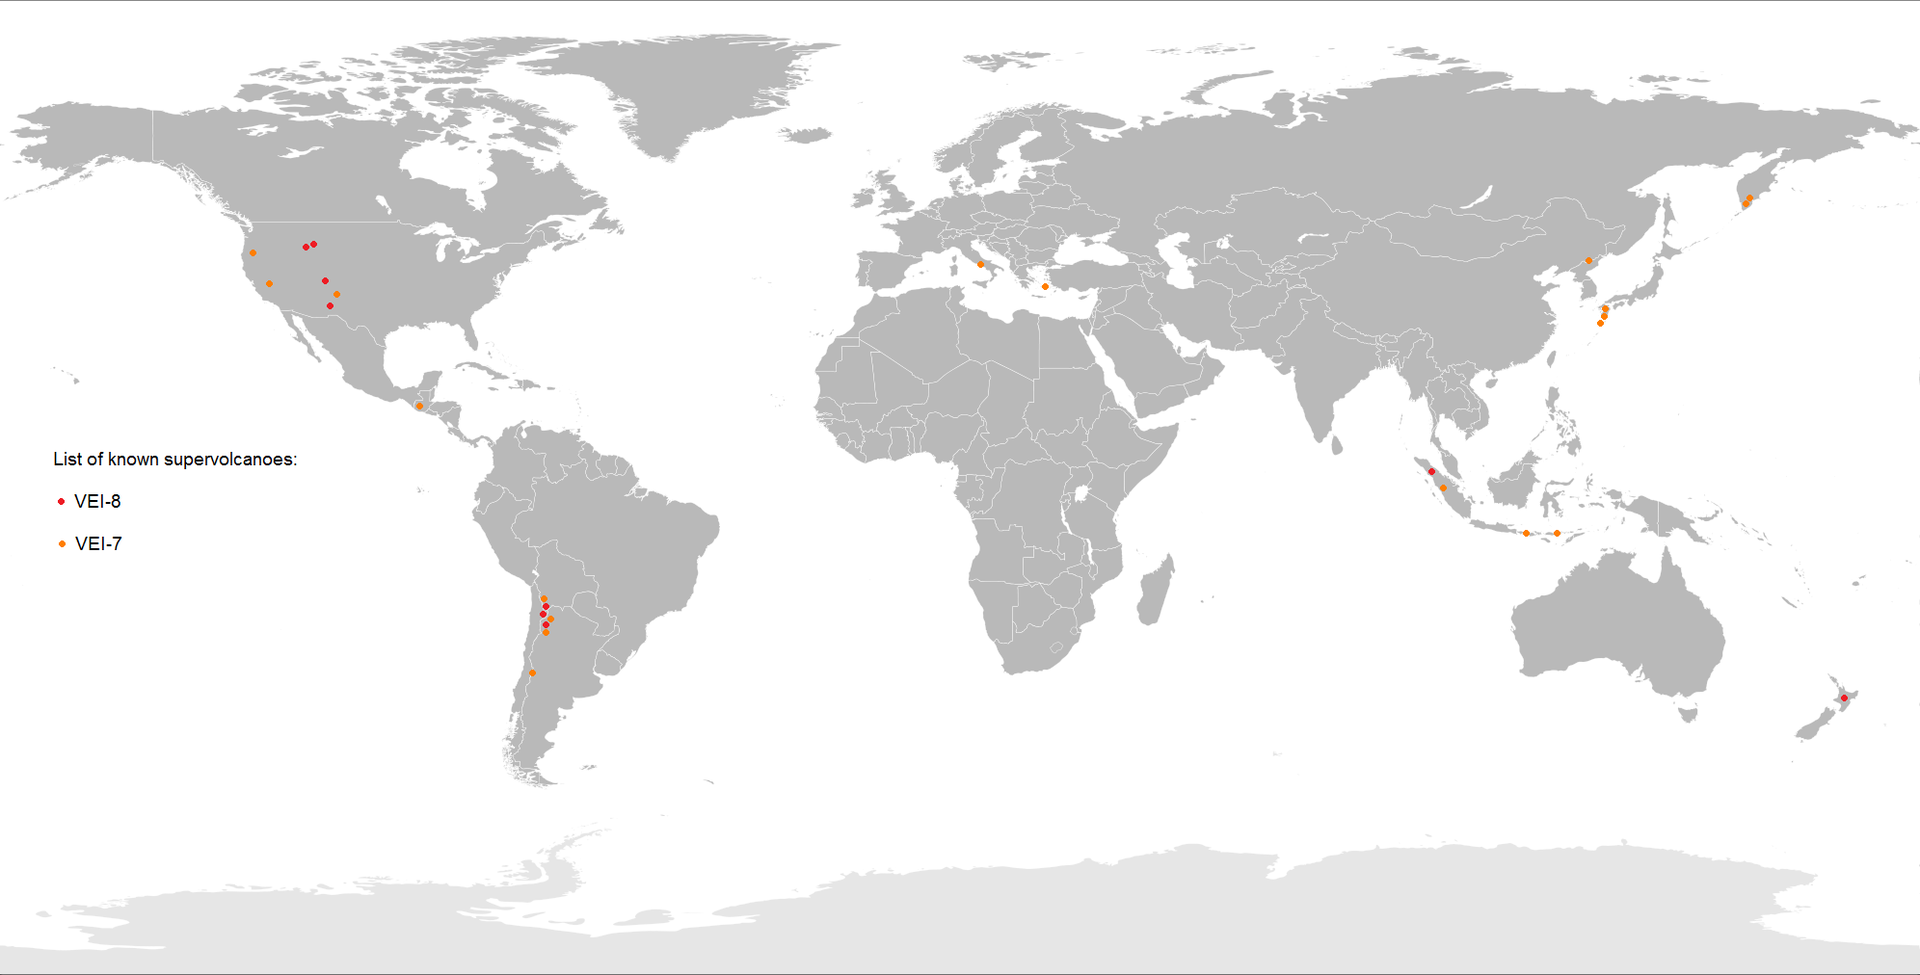 supervolcanoes around the world, list of supervolcanoes around the world